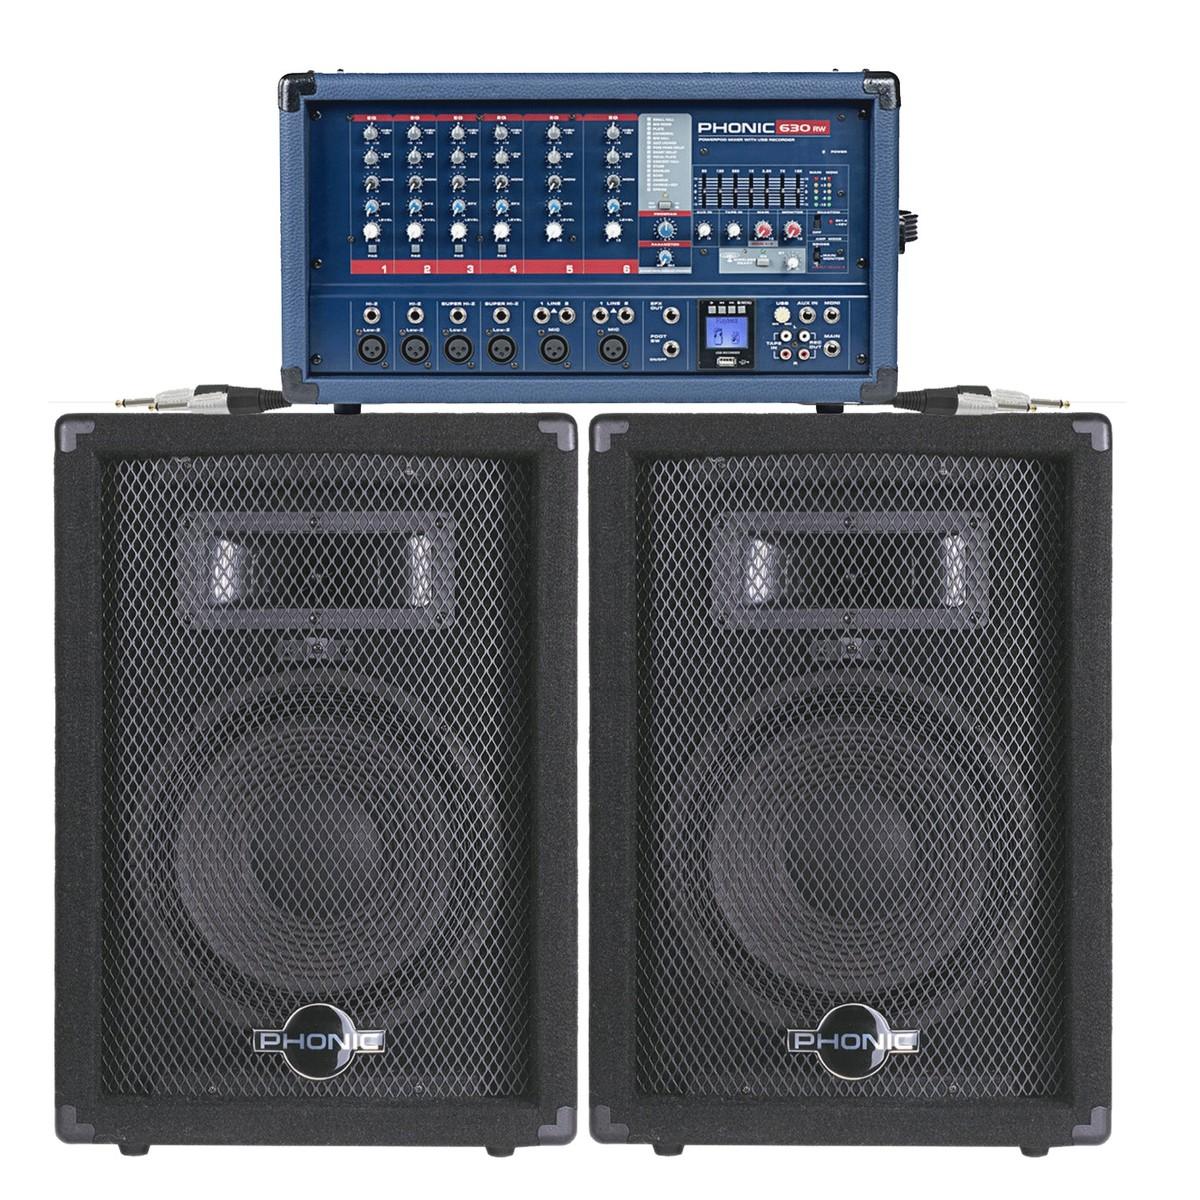 300w phonic pa system with fx mixer and speakers at. Black Bedroom Furniture Sets. Home Design Ideas